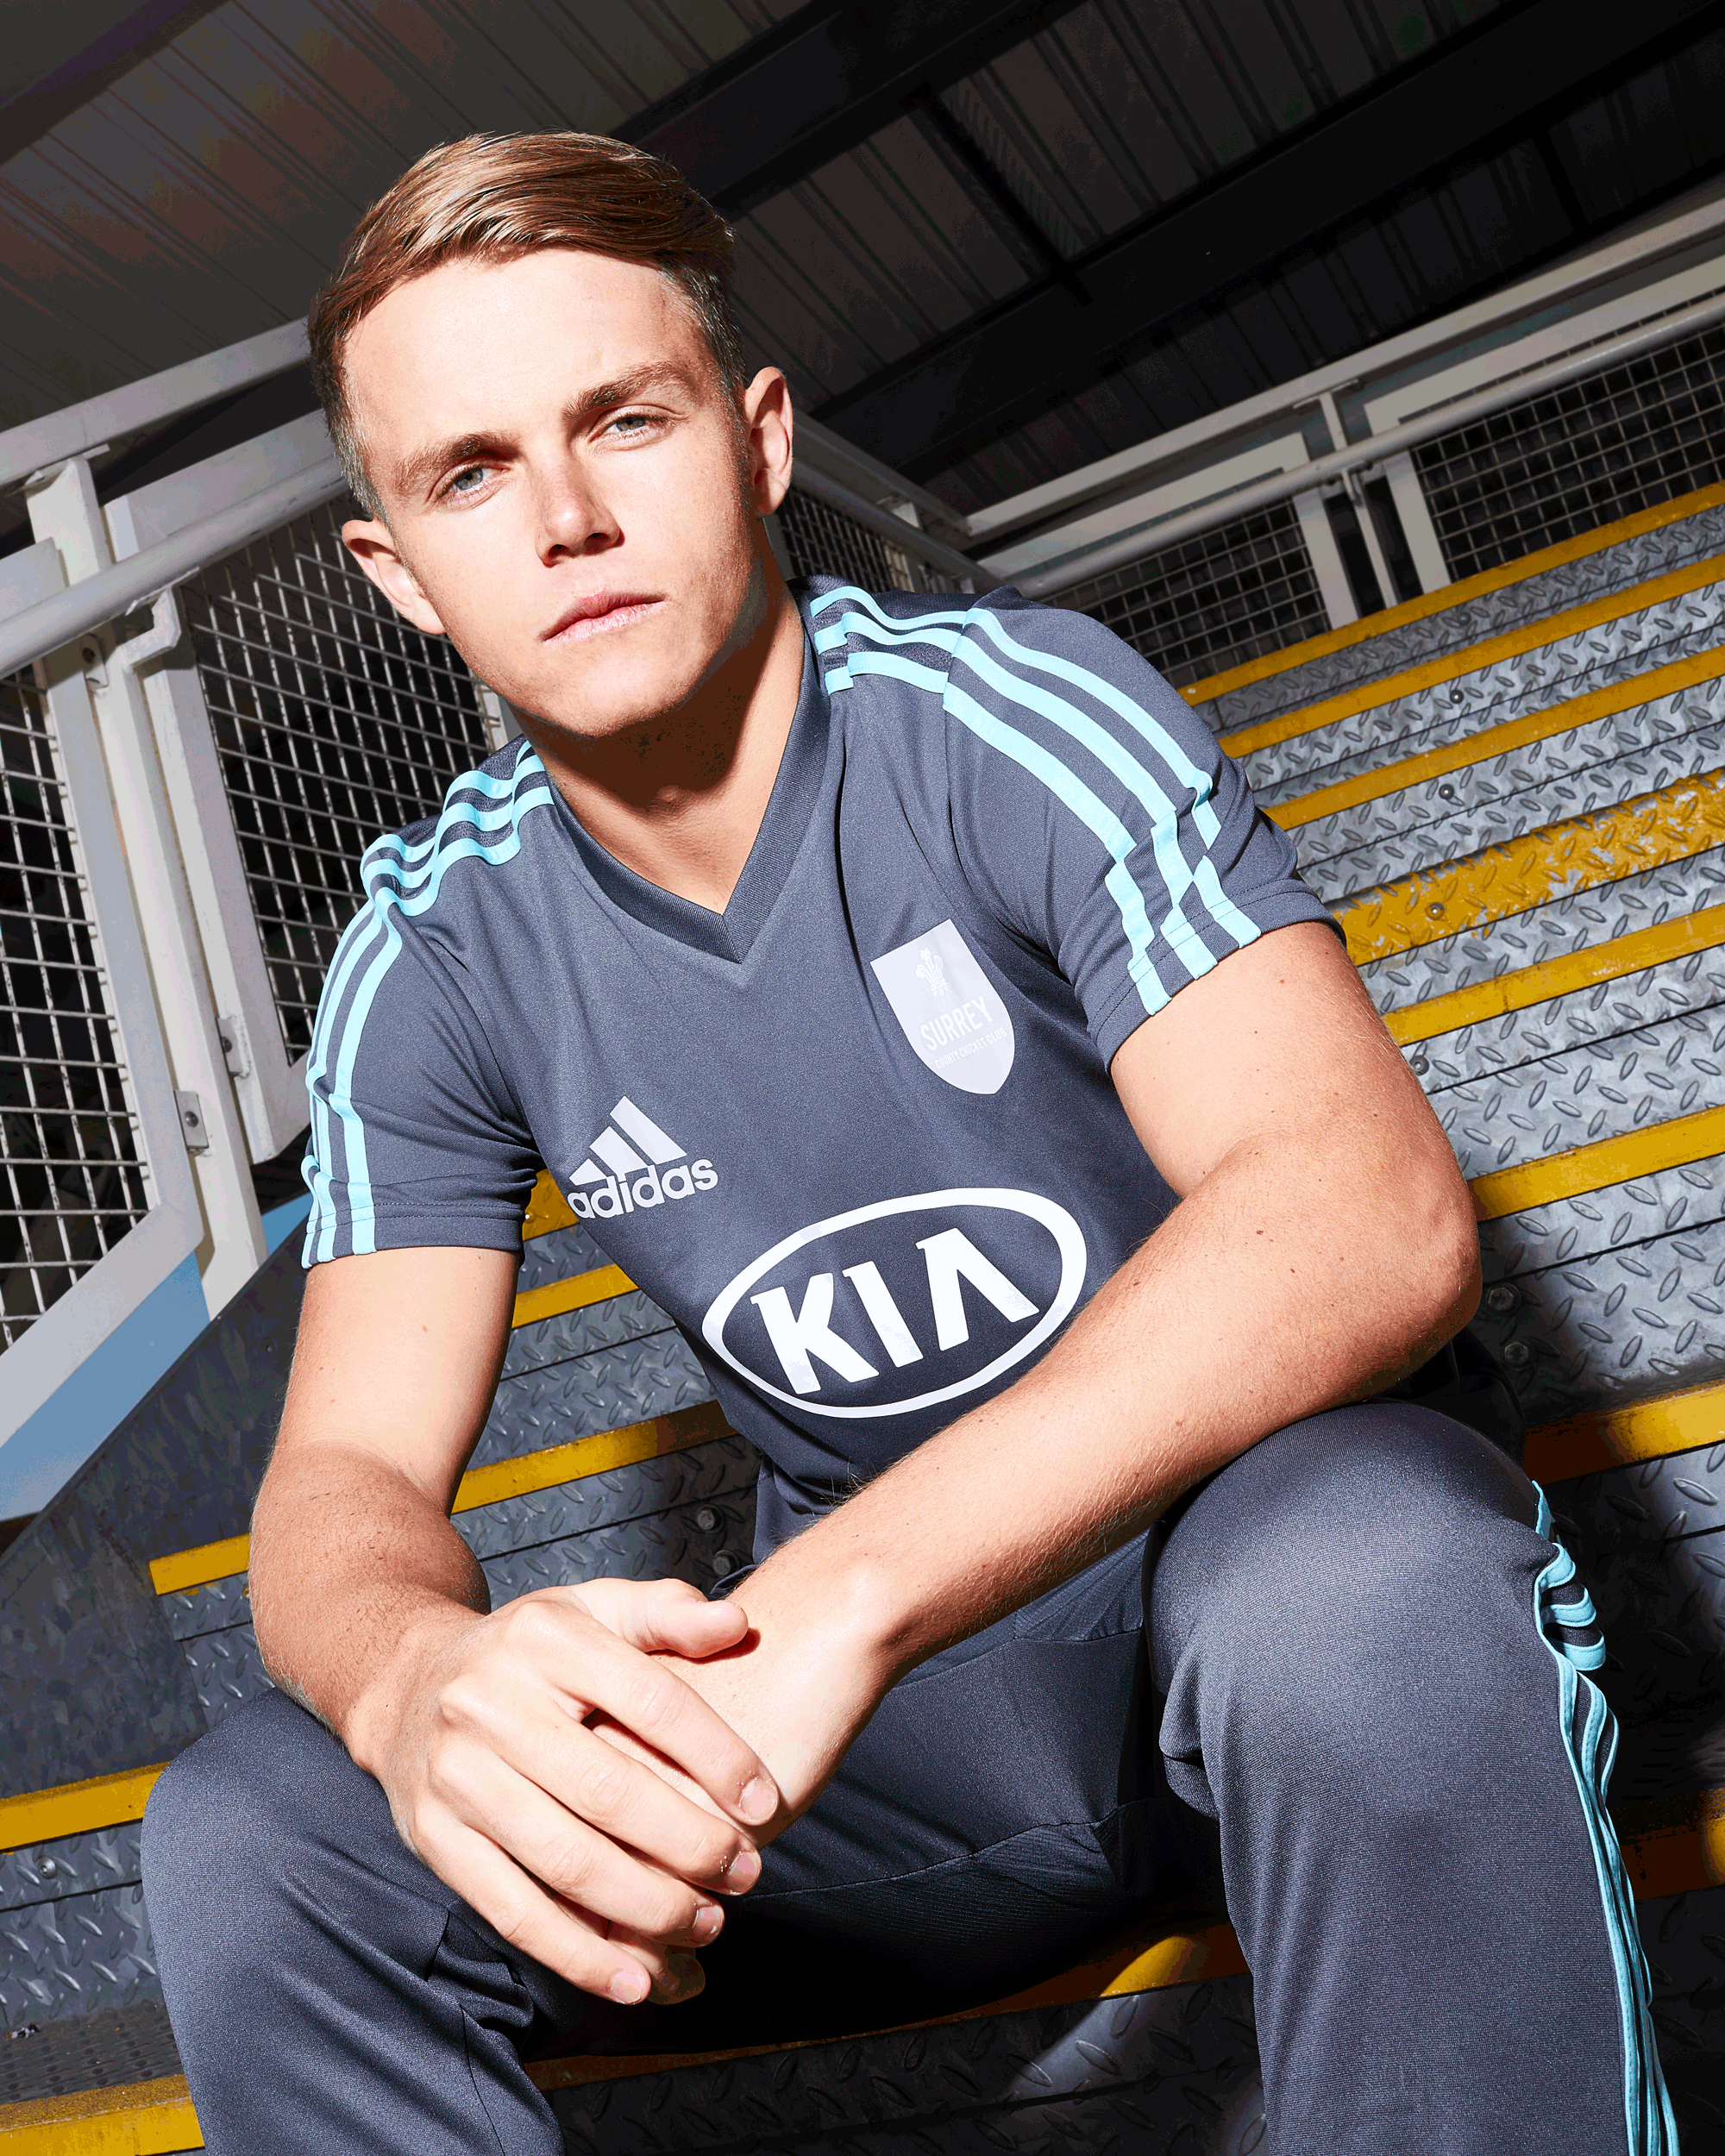 Surrey-Cricket-Launch-Adidas-26-02-190126.png